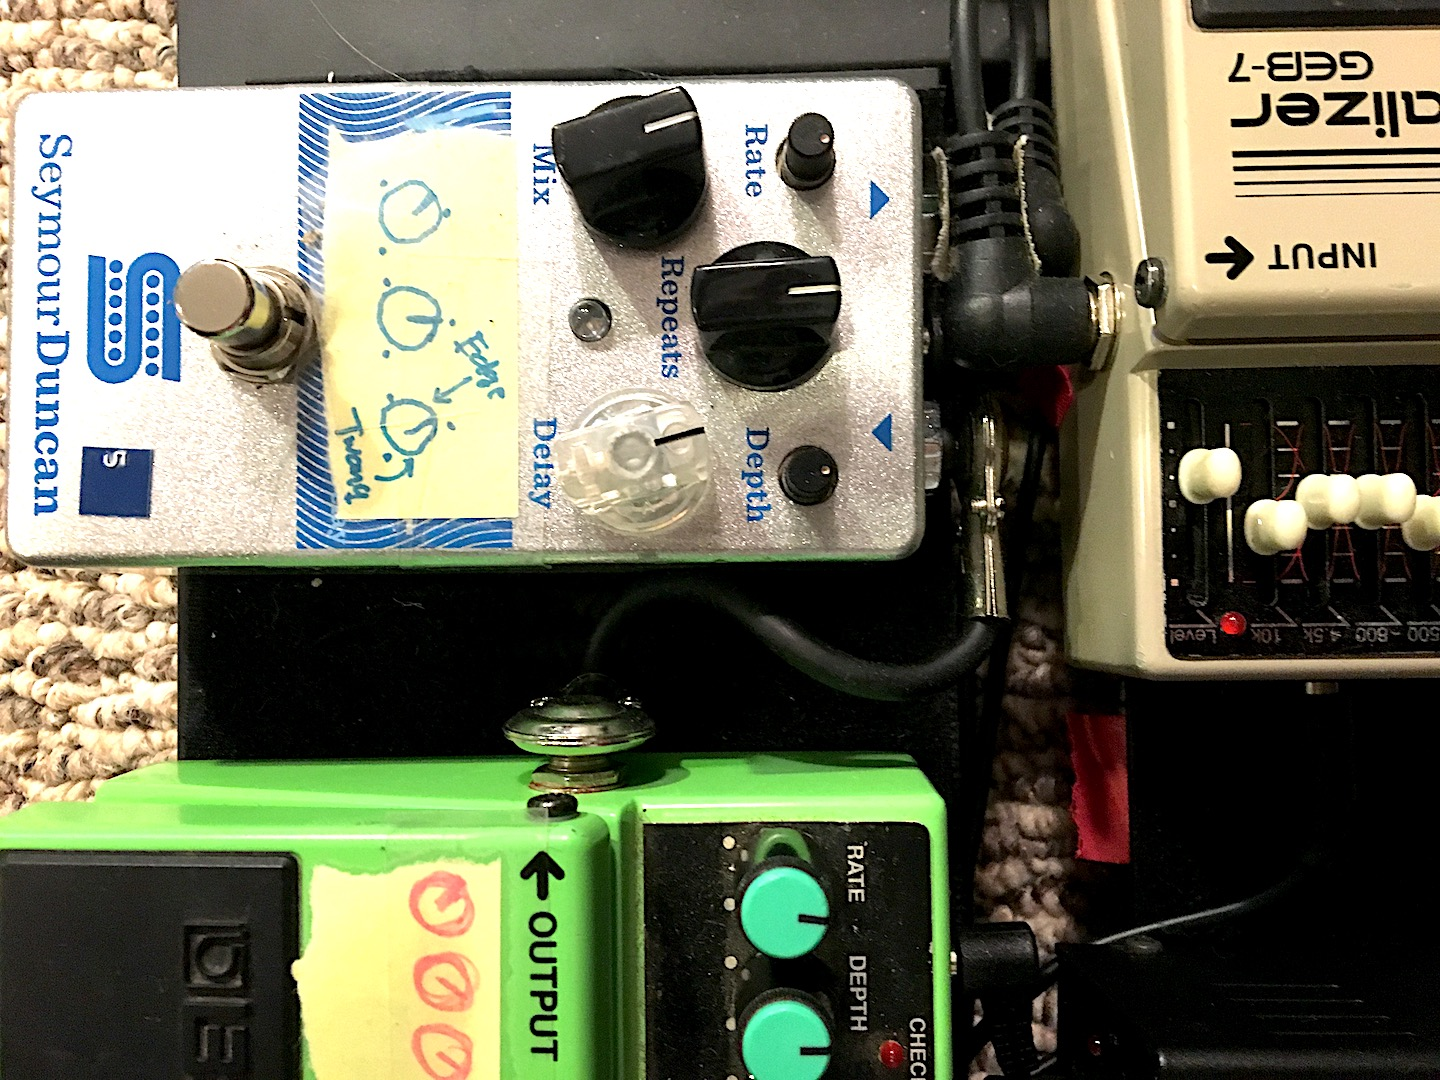 Low Profile Patch Cable on Pedalboard